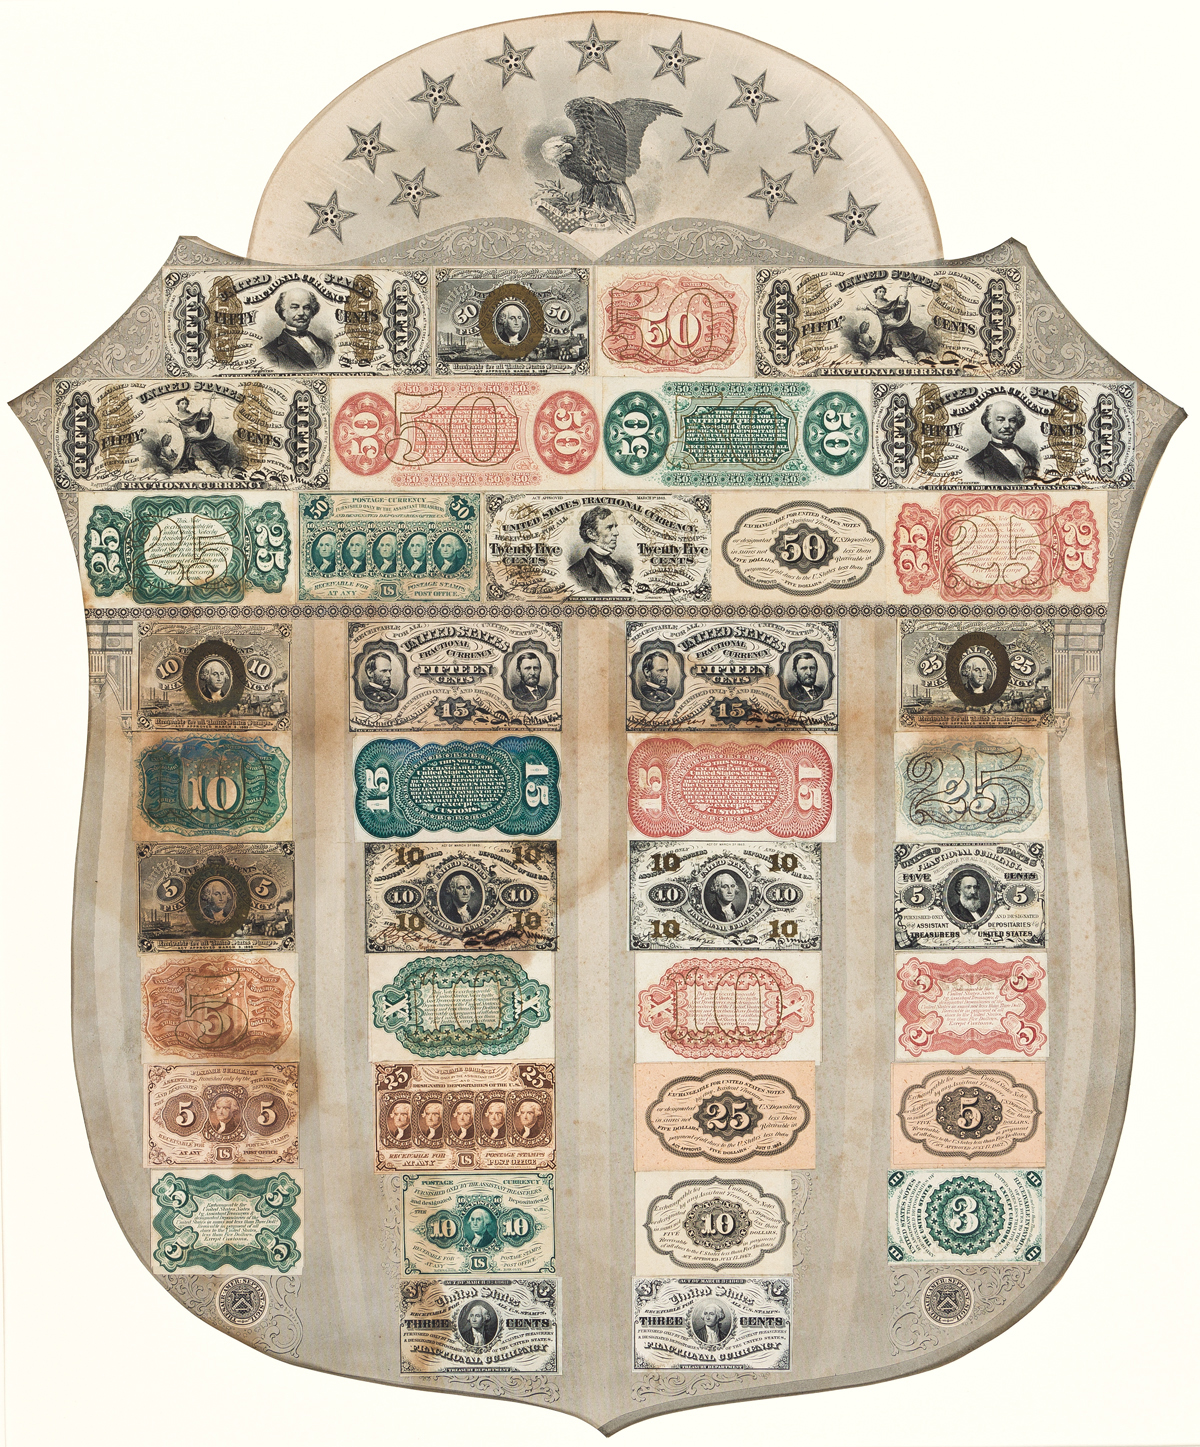 (CURRENCY.) Fractional currency shield with mounted specimen notes.